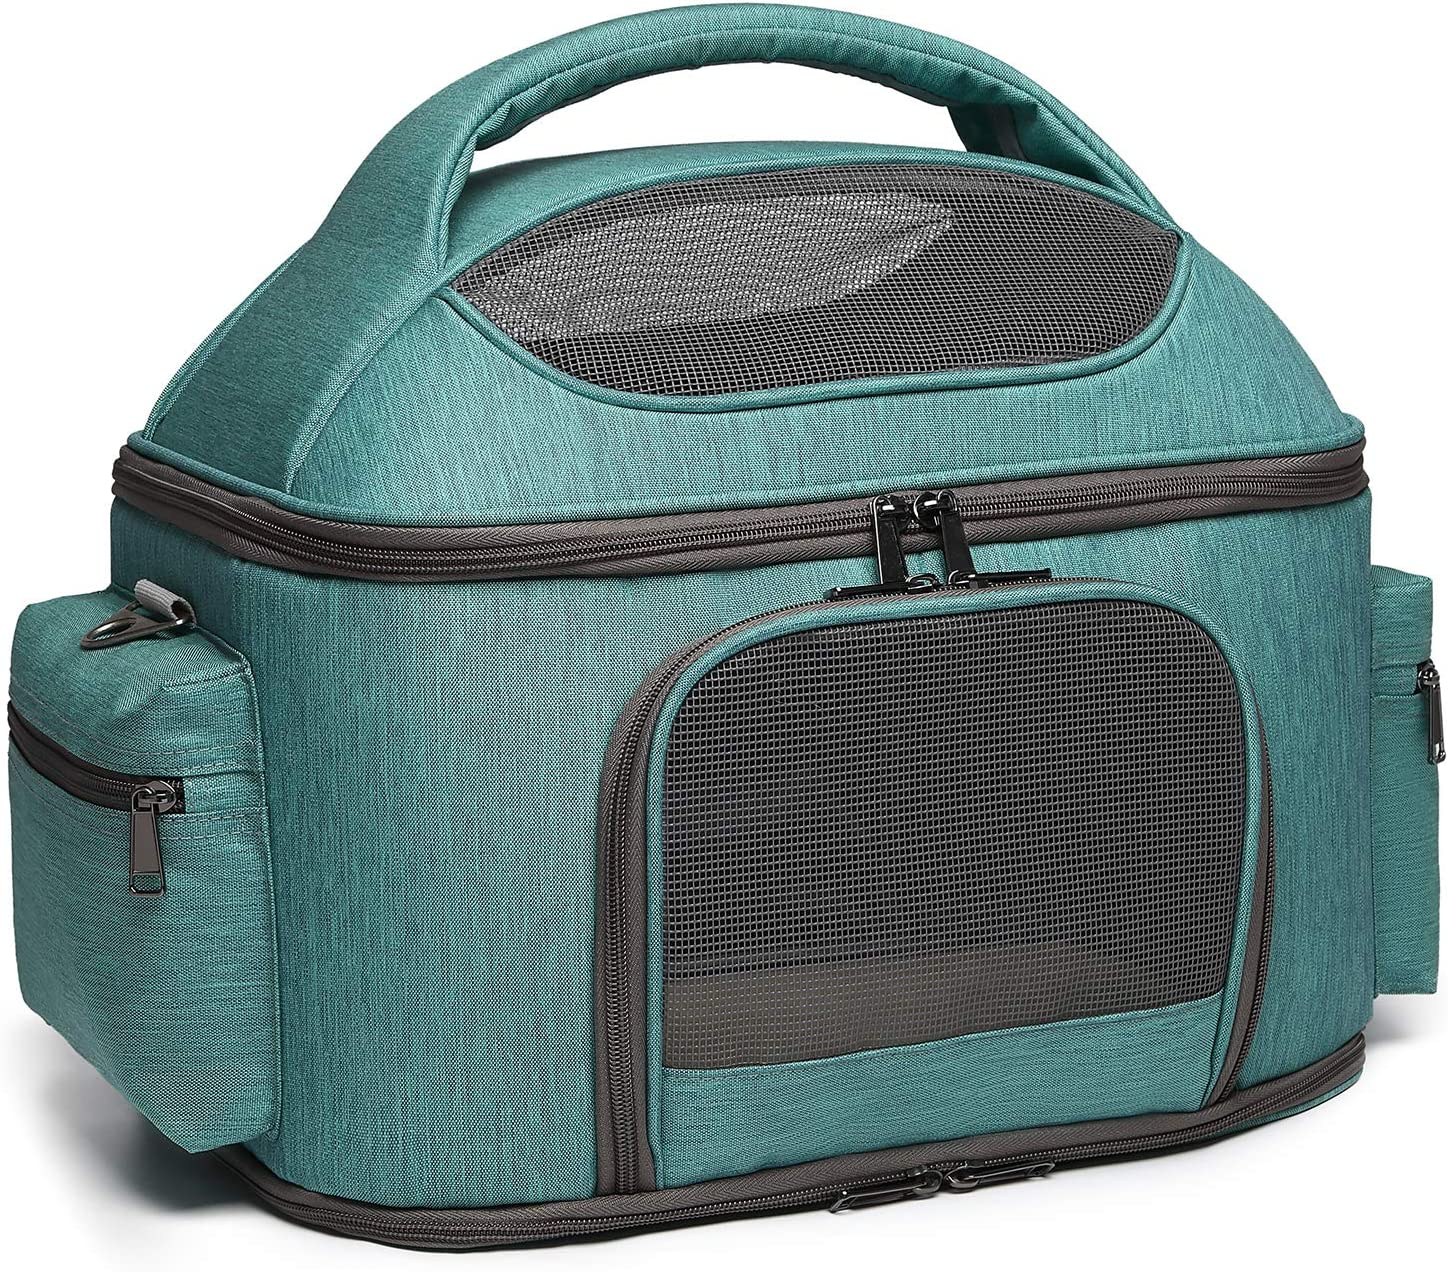 halinfer Pet Carrier for Large Cats and to Popular standard 20 55% OFF Fits Small Dog up